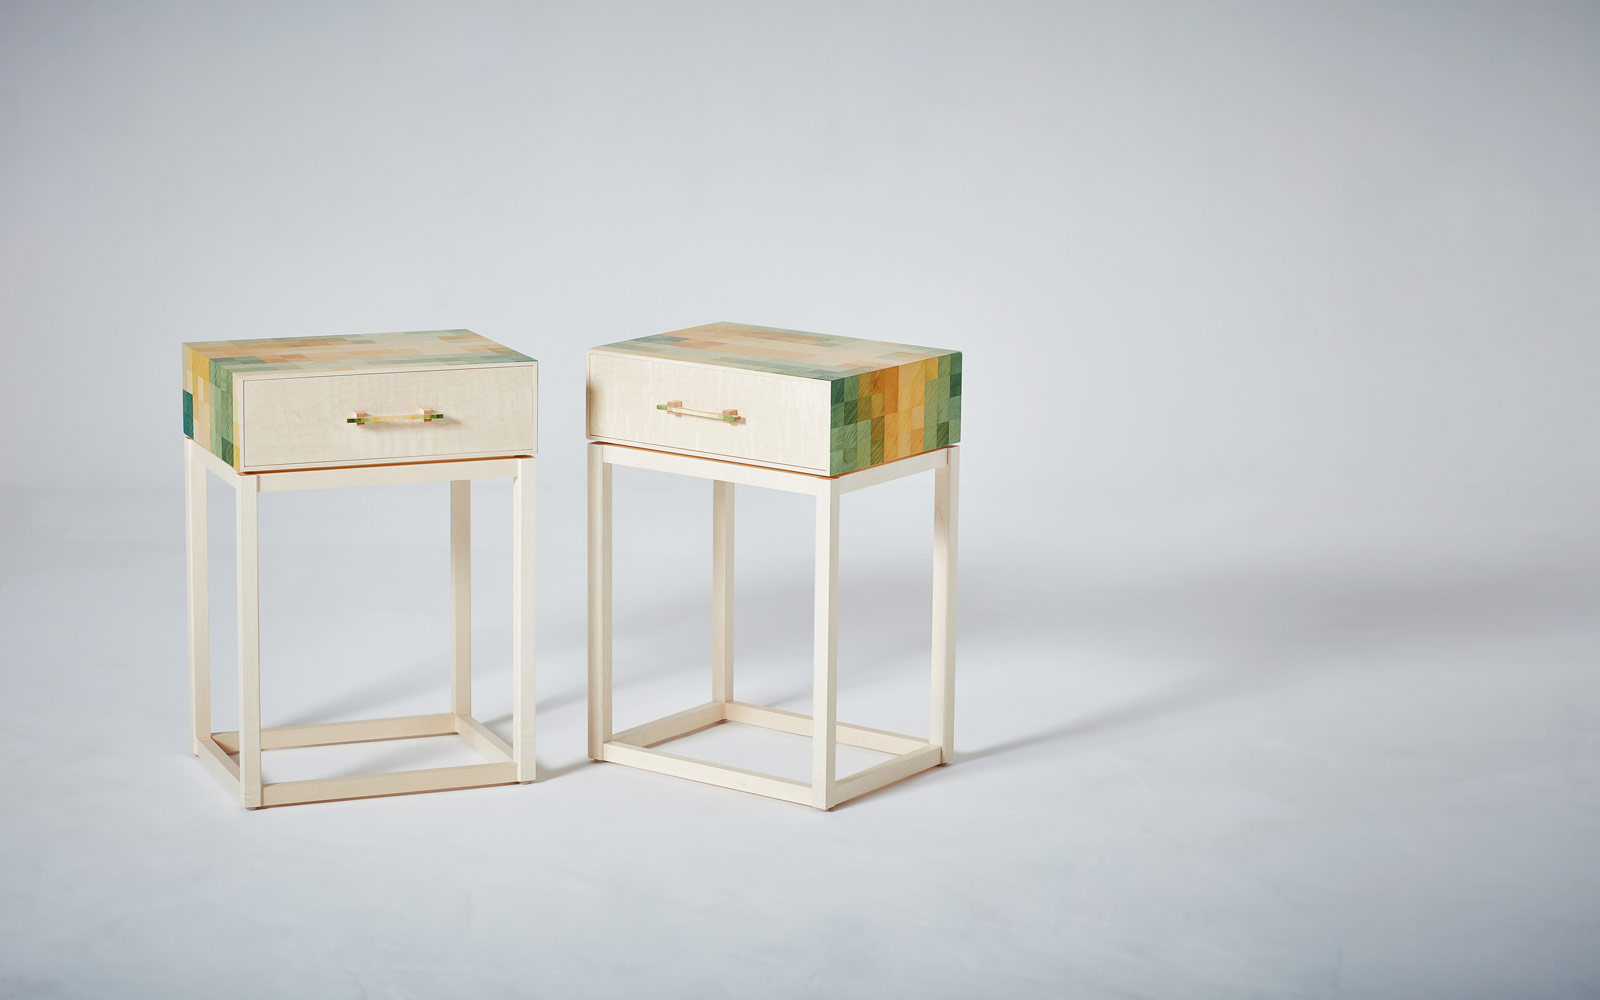 FI-kevin-stamper-summer-field-side-tables-04.jpg